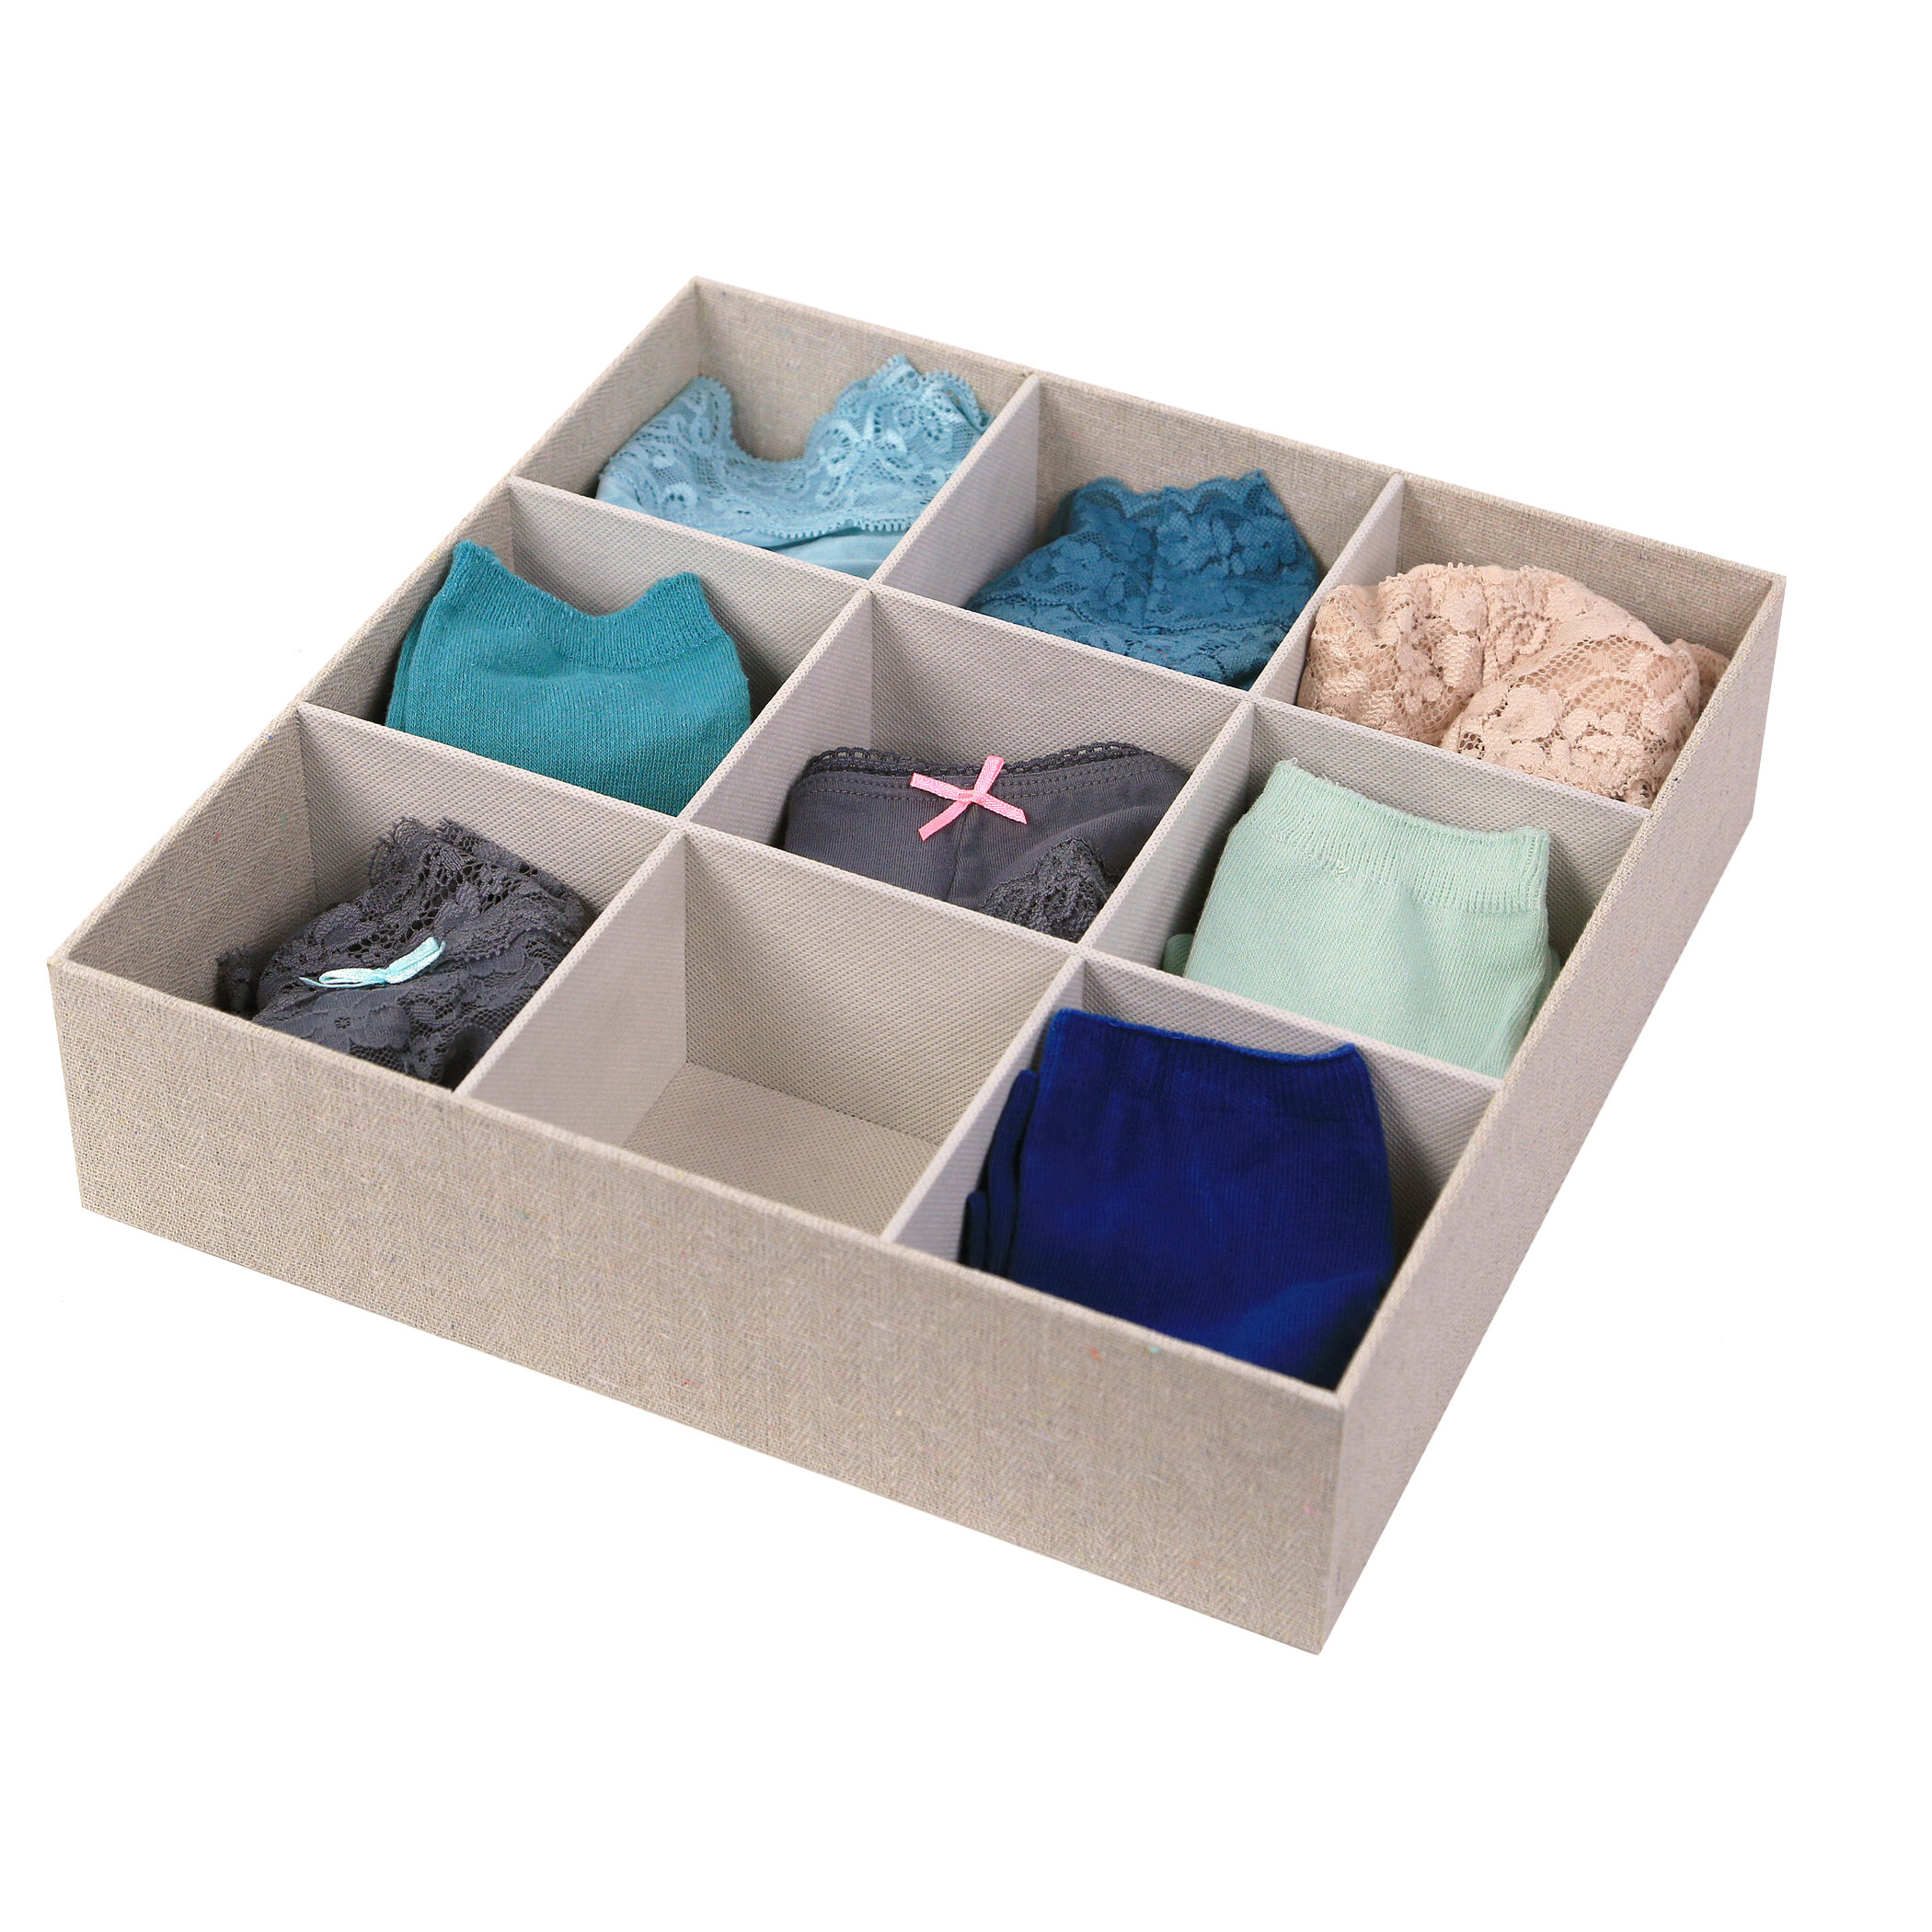 design organize to redoubtable dresser organizers put drawers xyberworks a in drawer how what for residence bedroom your